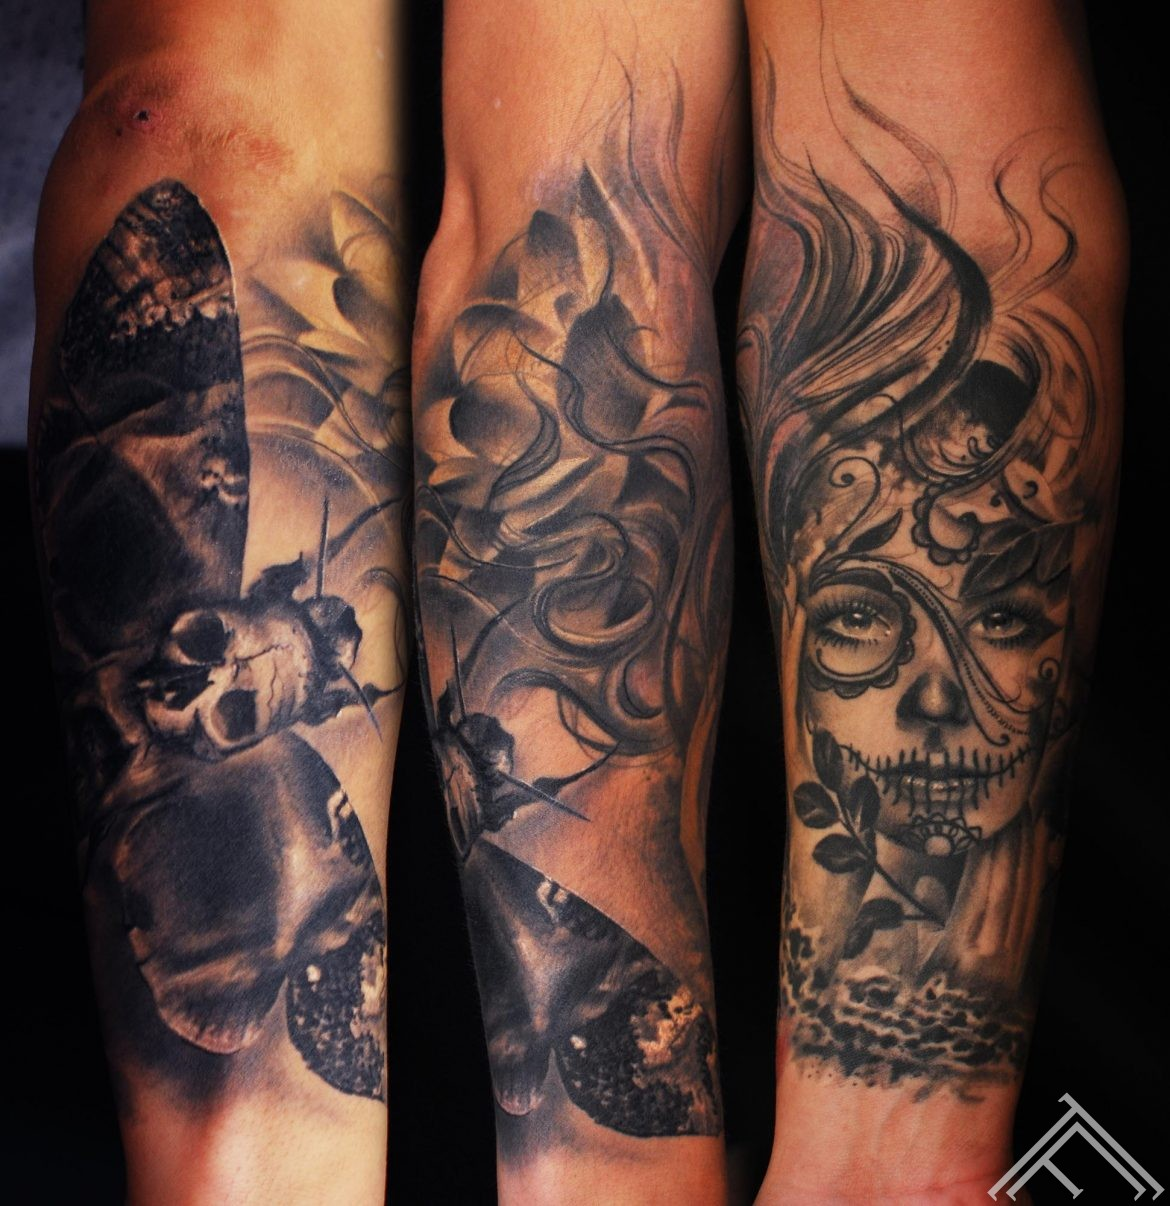 moth_muerte_tattoo_lotos_tattoofrequency_marispavlo